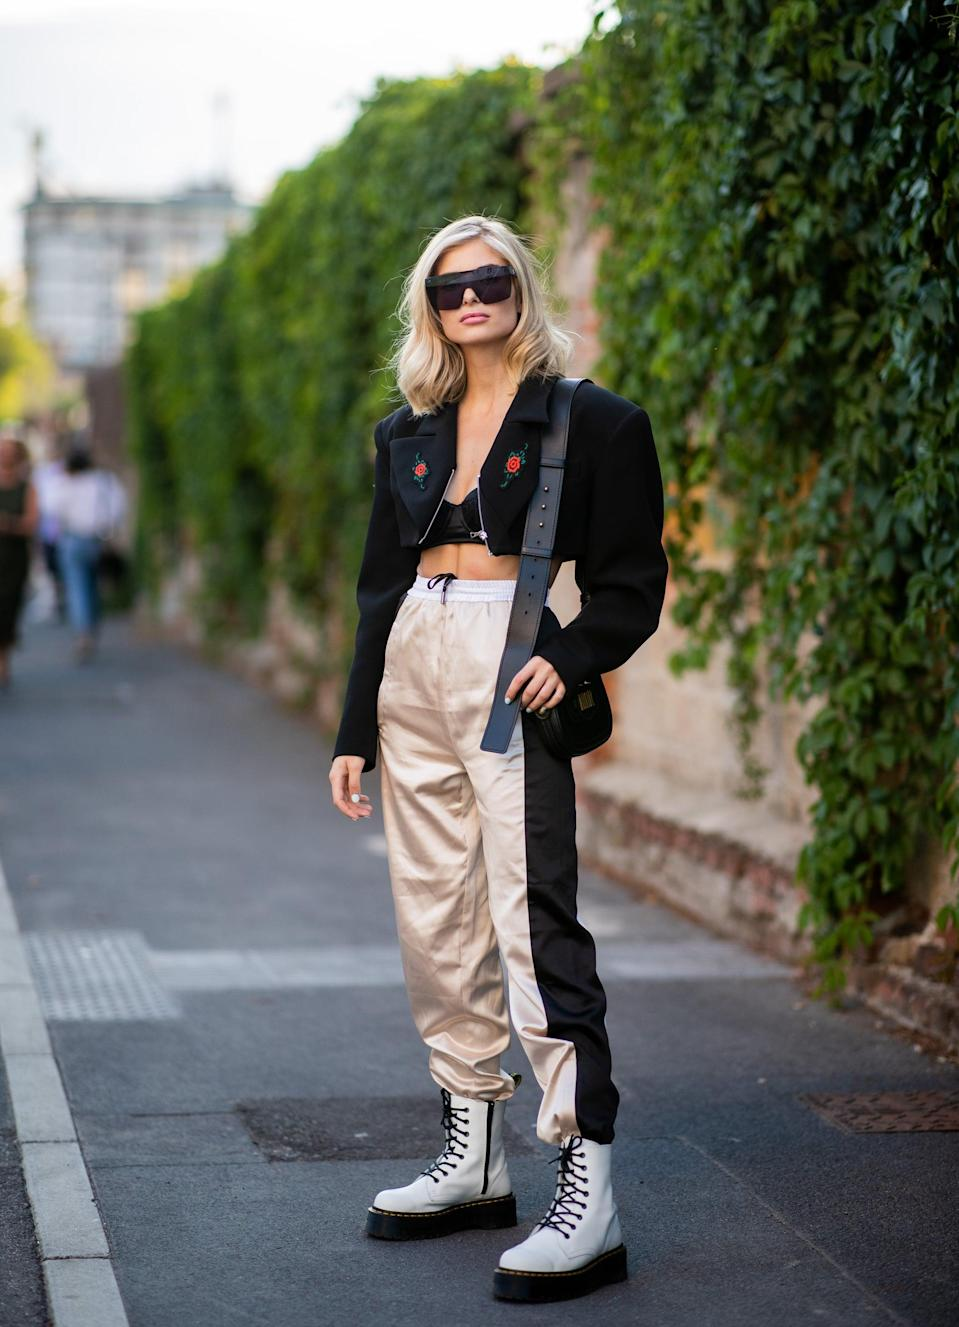 <p>A Scorpio needs a hair color that's sophisticated and powerful, like their personality. You'll love a bright platinum blond hue because it matches the rest of your polished, chic look.</p>